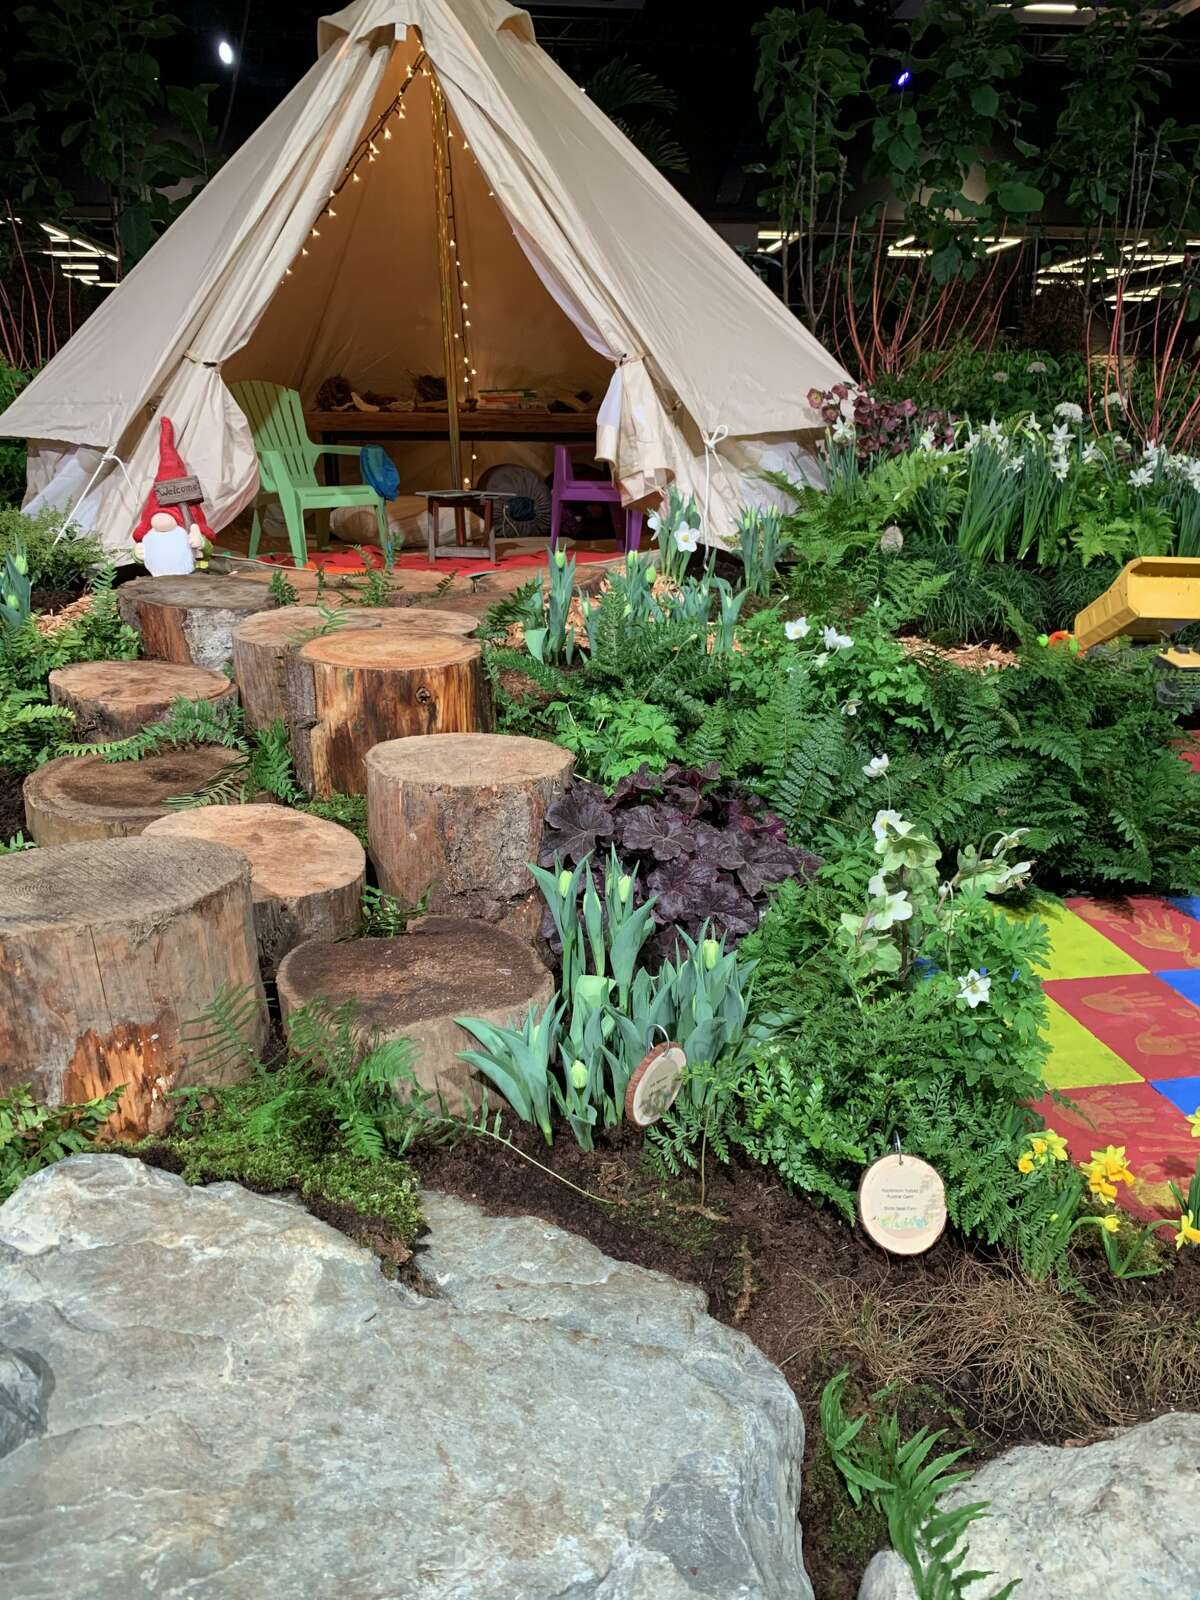 The Northwest Flower and Garden Festival comes to Seattle Feb. 26 through March 1.